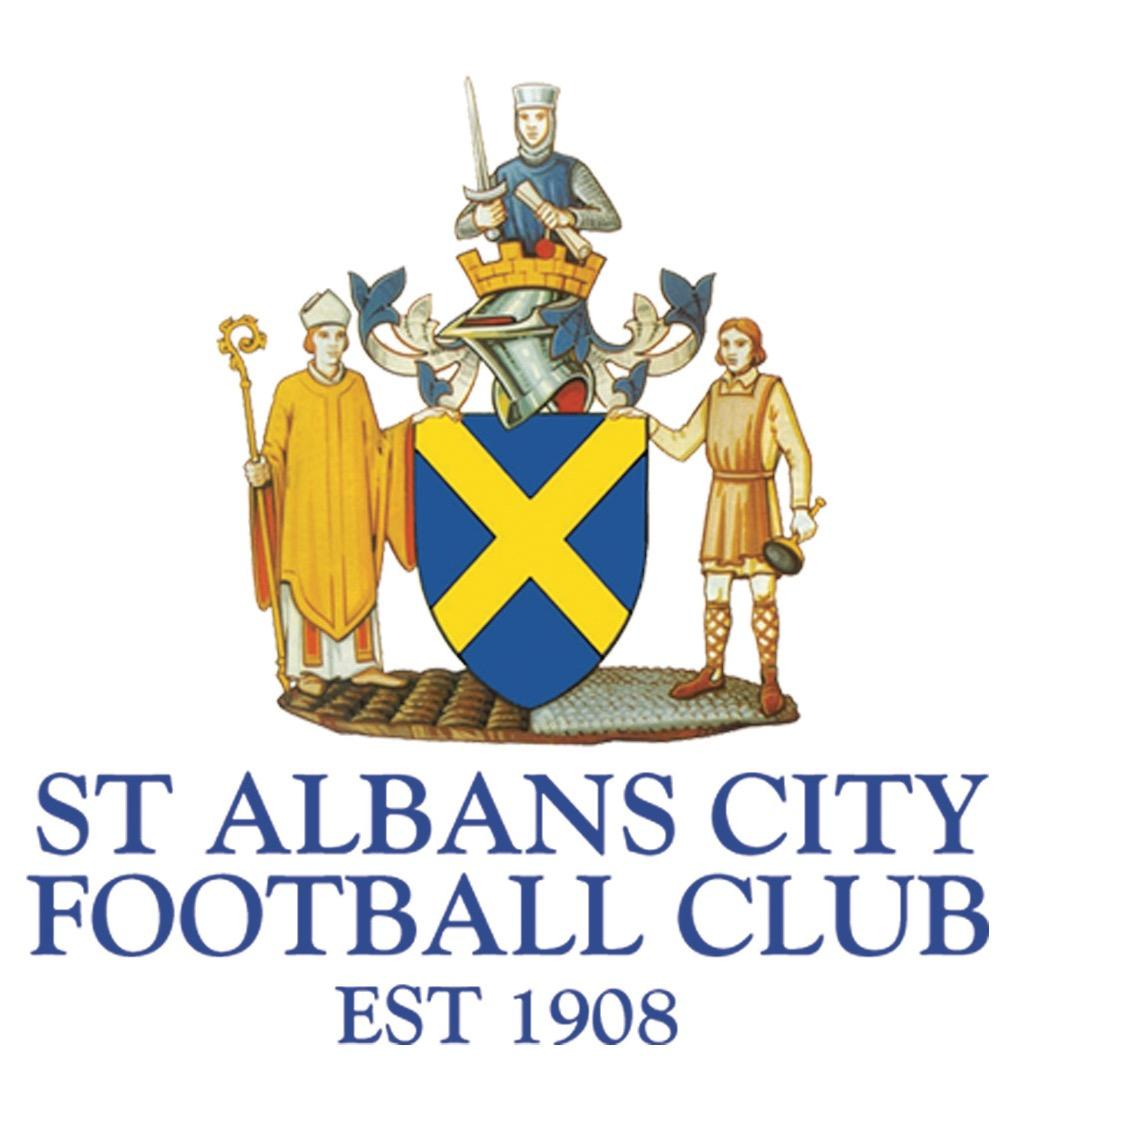 St albans city football club logo